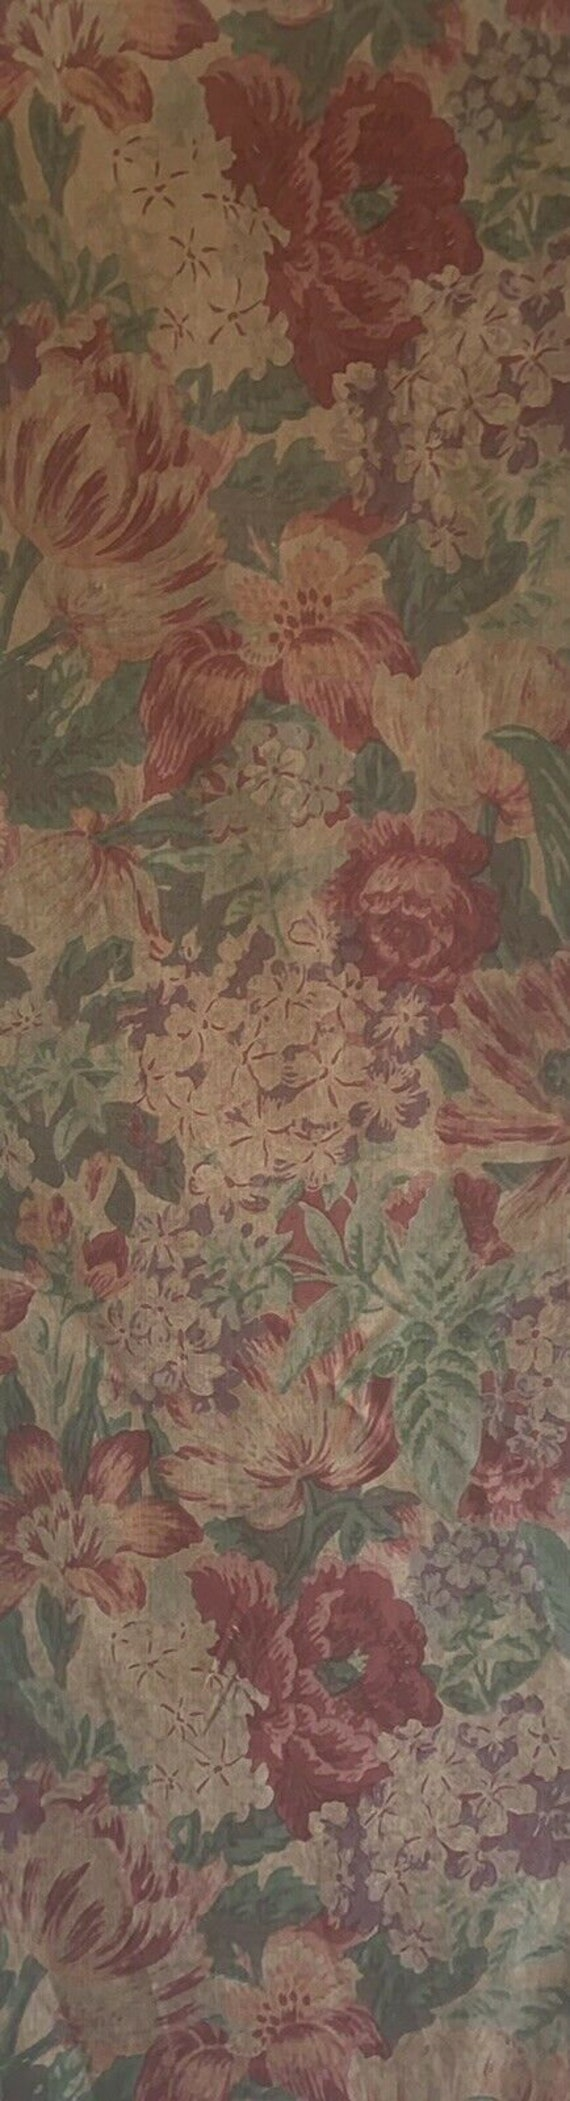 Beautiful 1920's French printed cotton packed floral fabric 5235